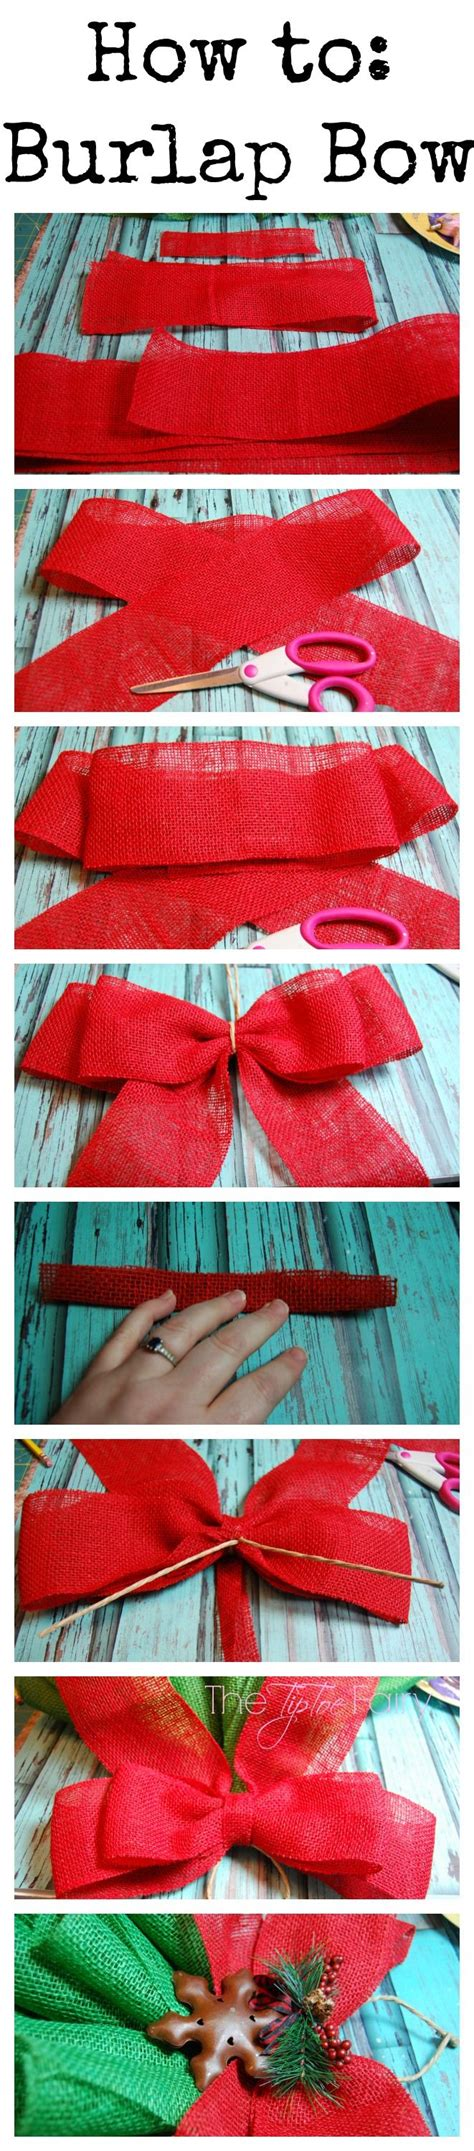 how to make christmas bows how to make a burlap bow pictures photos and images for facebook tumblr pinterest and twitter